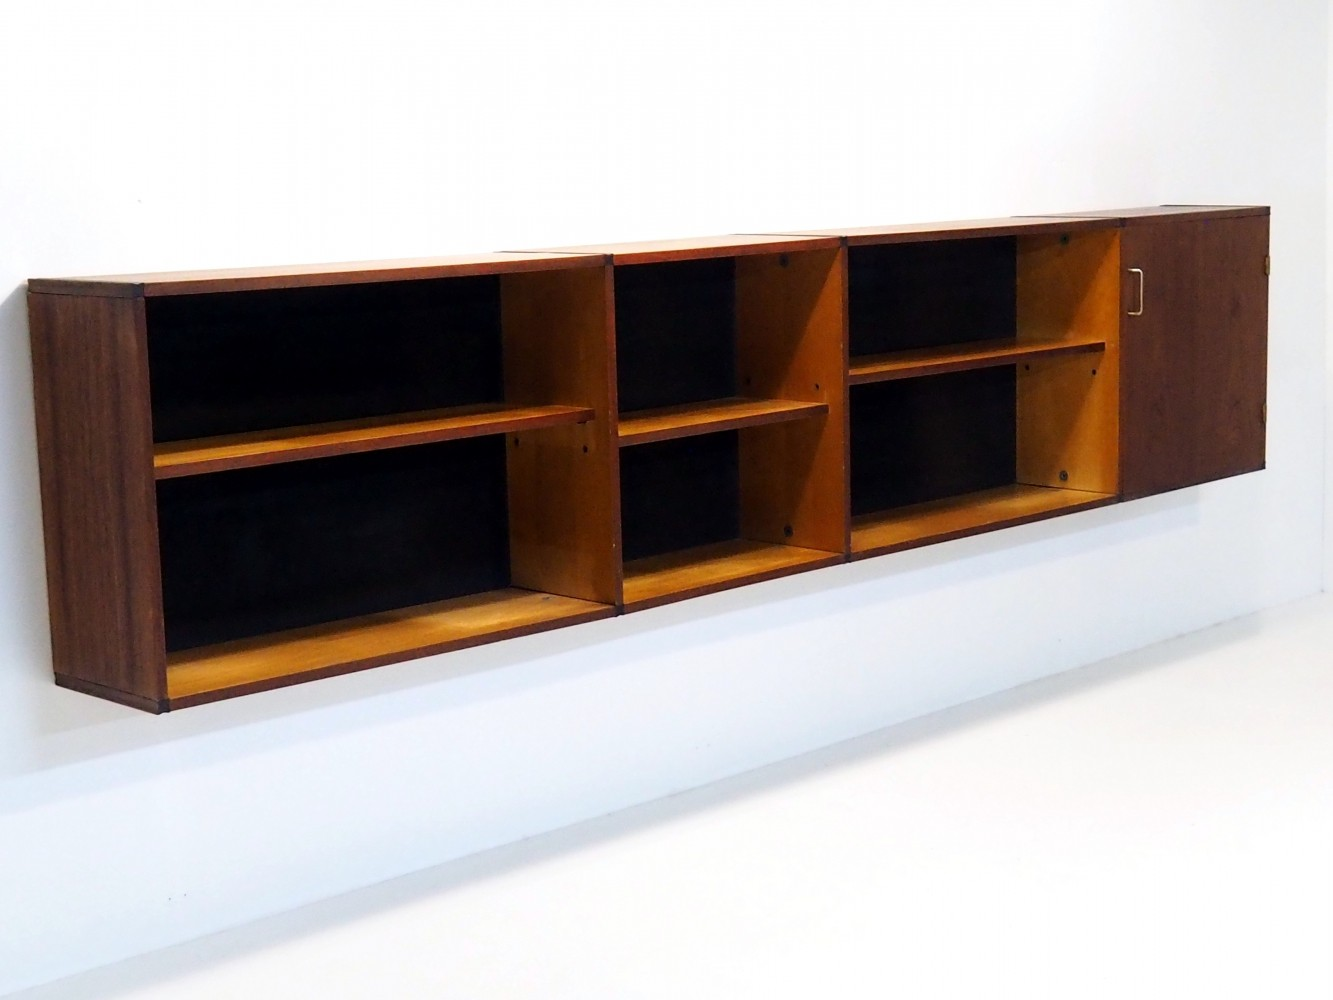 Extremely rare floating sideboard by Cees Braakman for Pastoe, 1960s